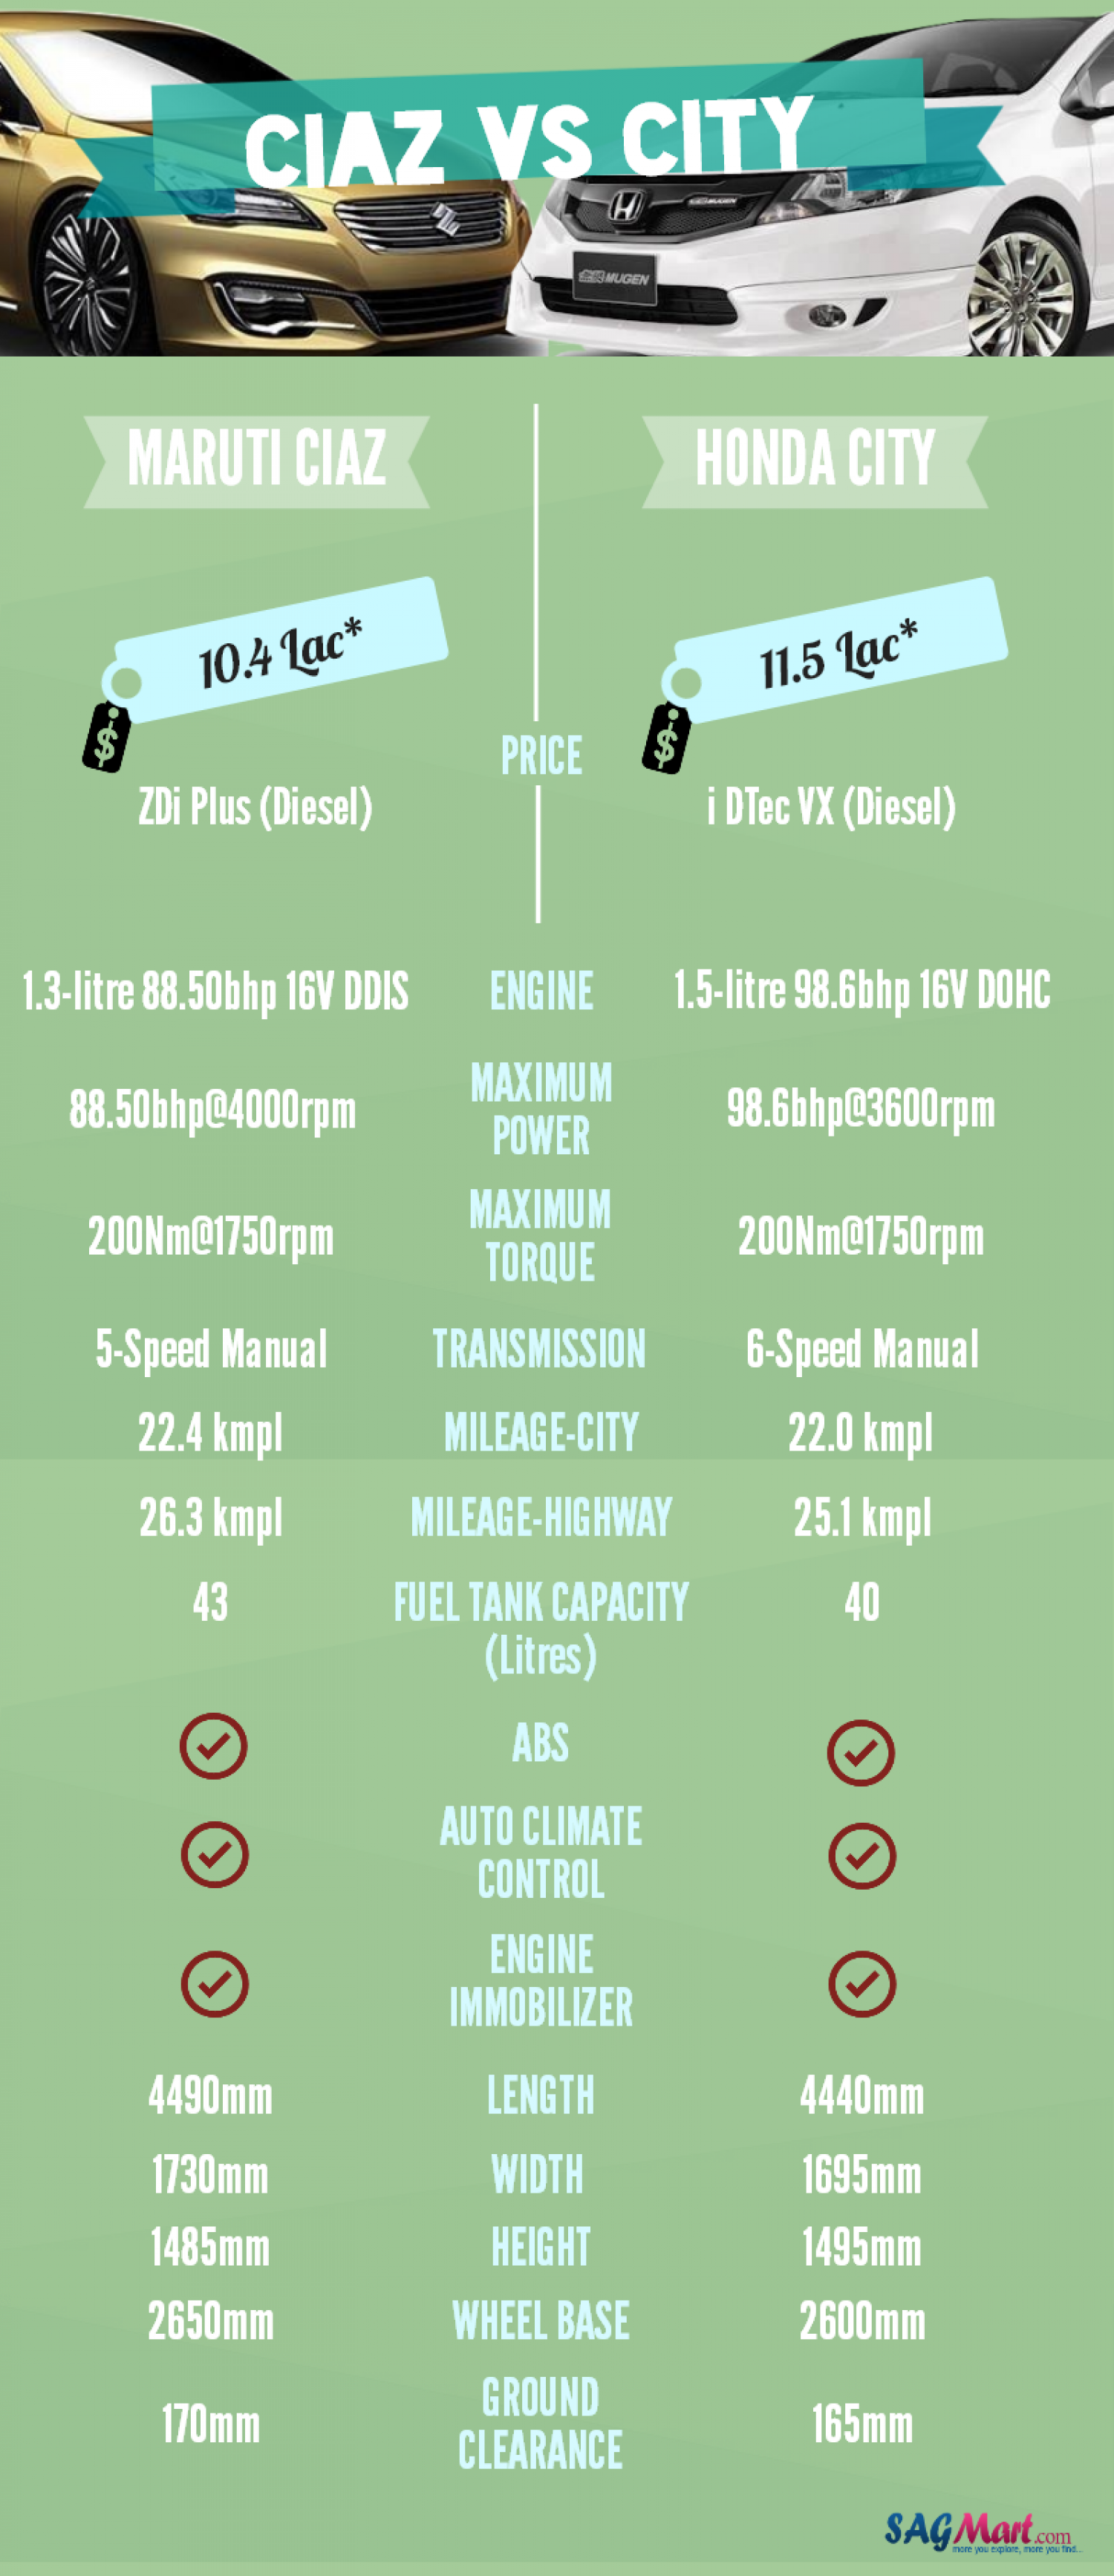 Car Comparison- City vs Ciaz Infographic